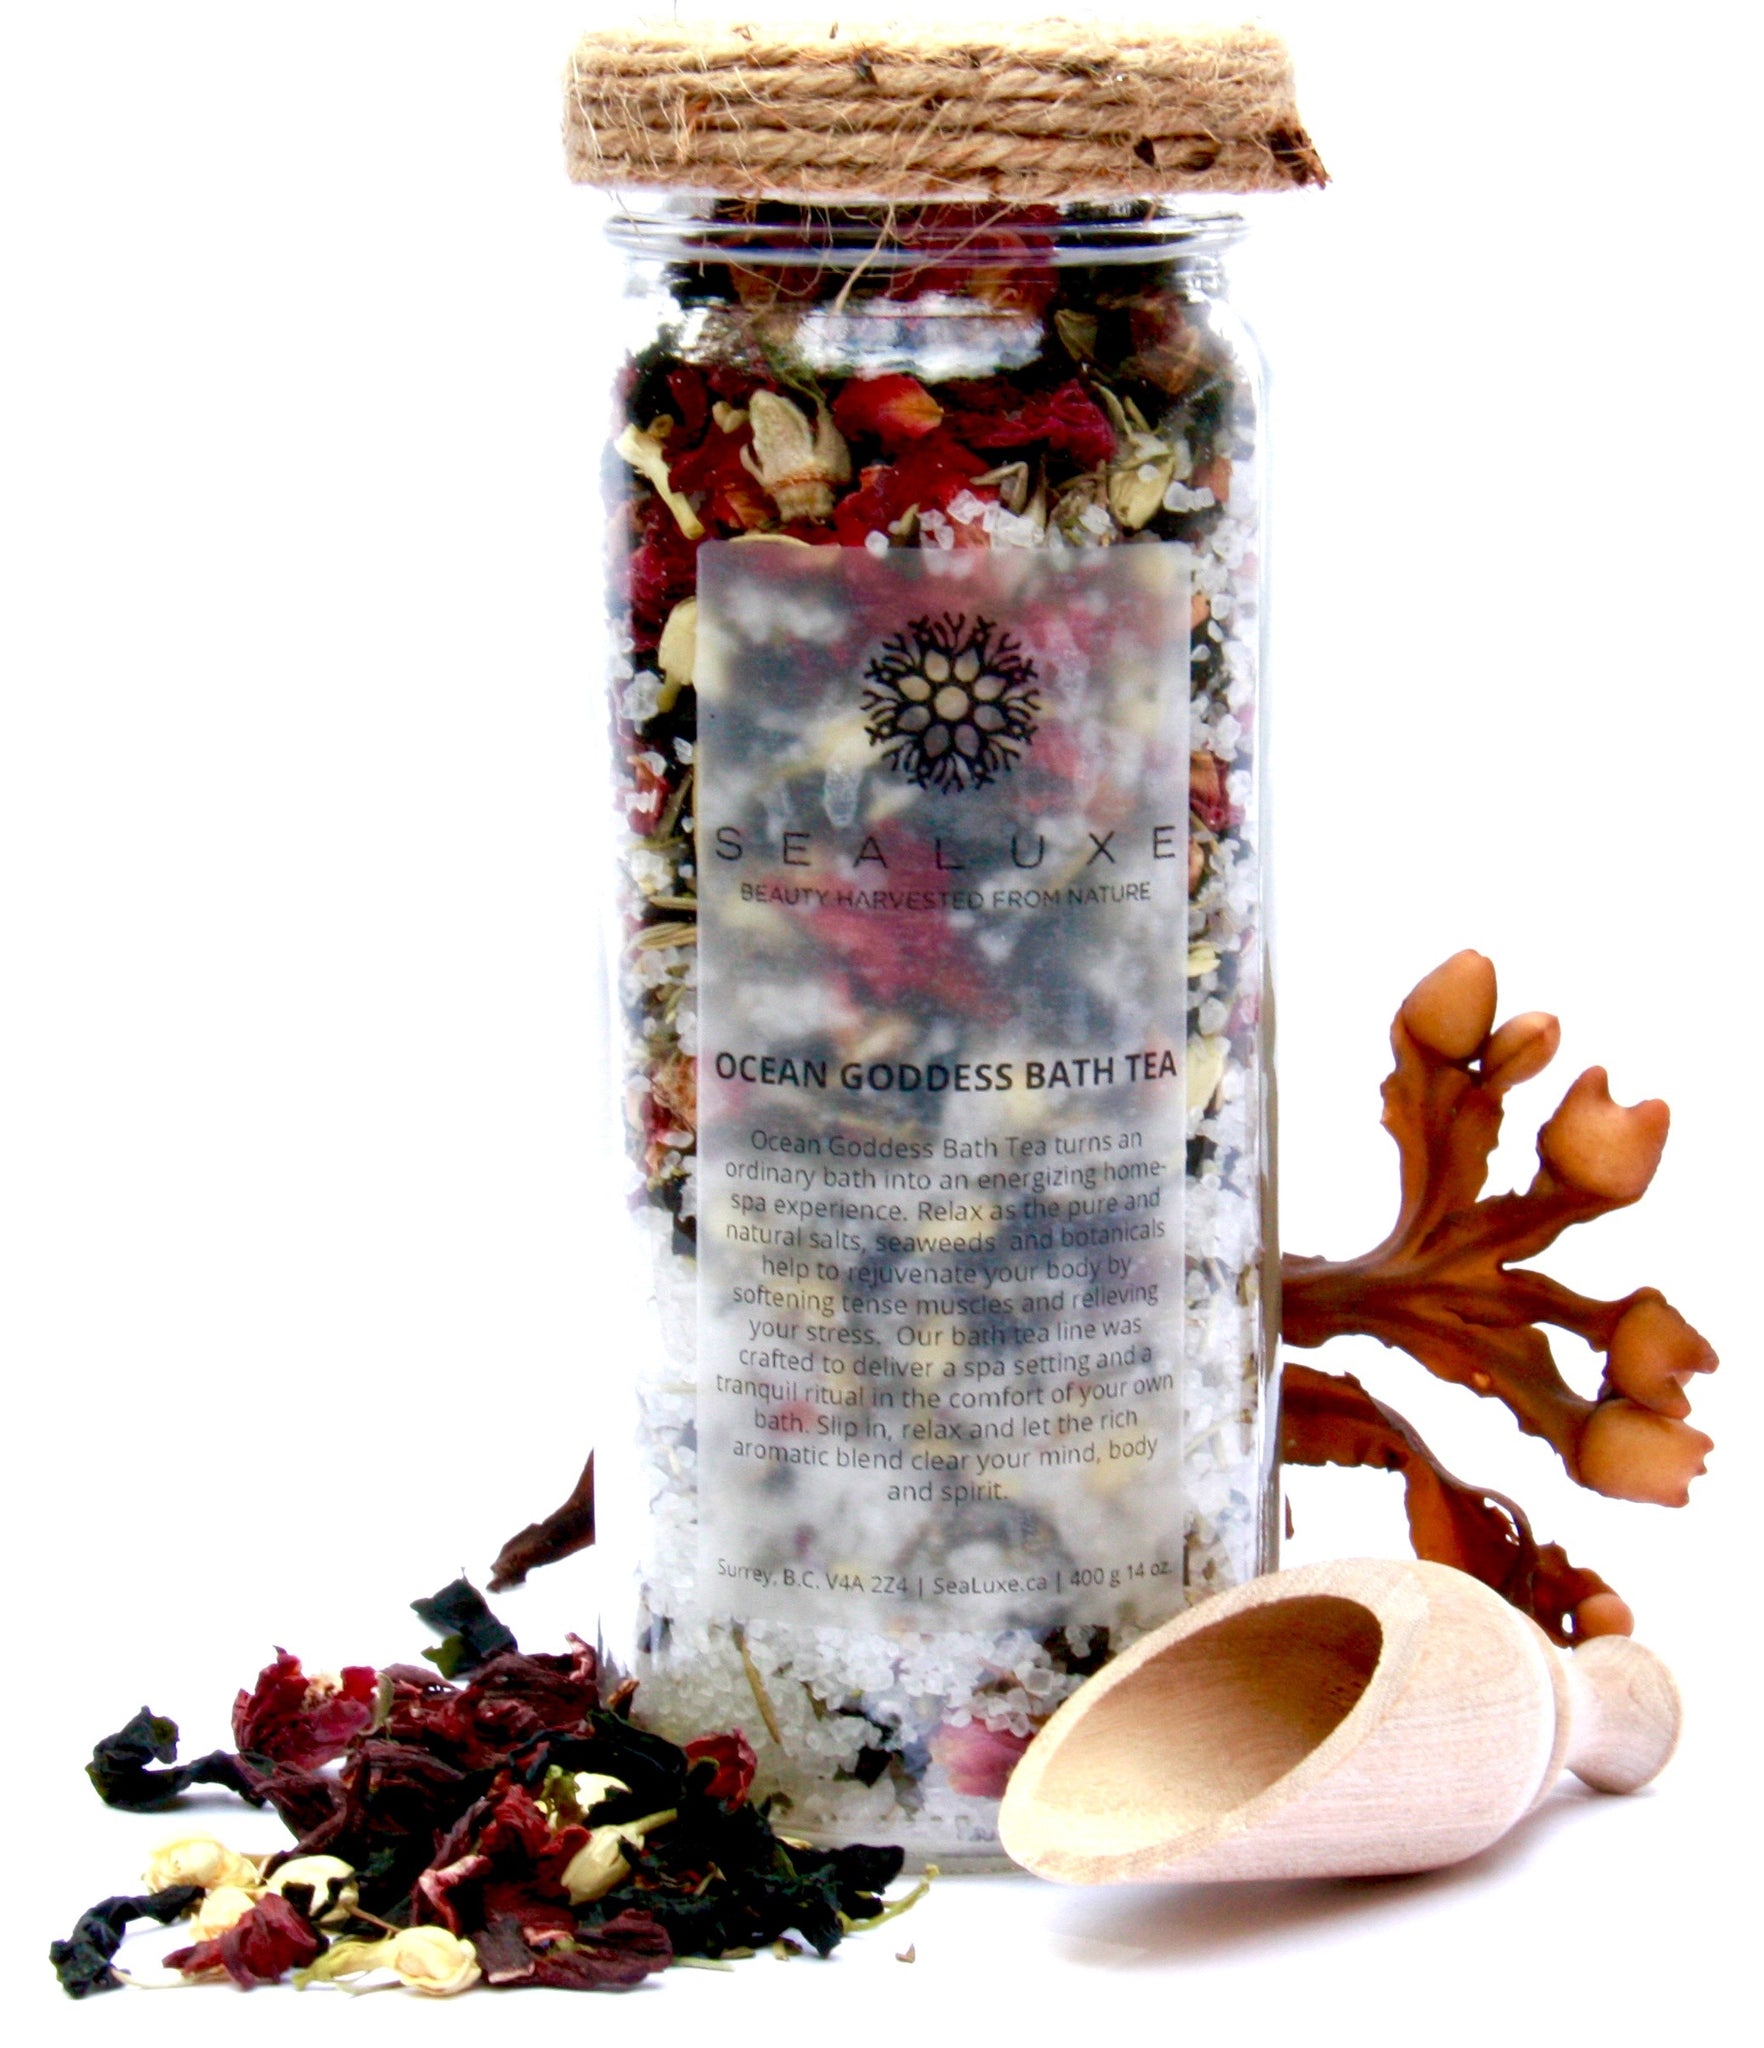 Ocean Goddess Bath Tea